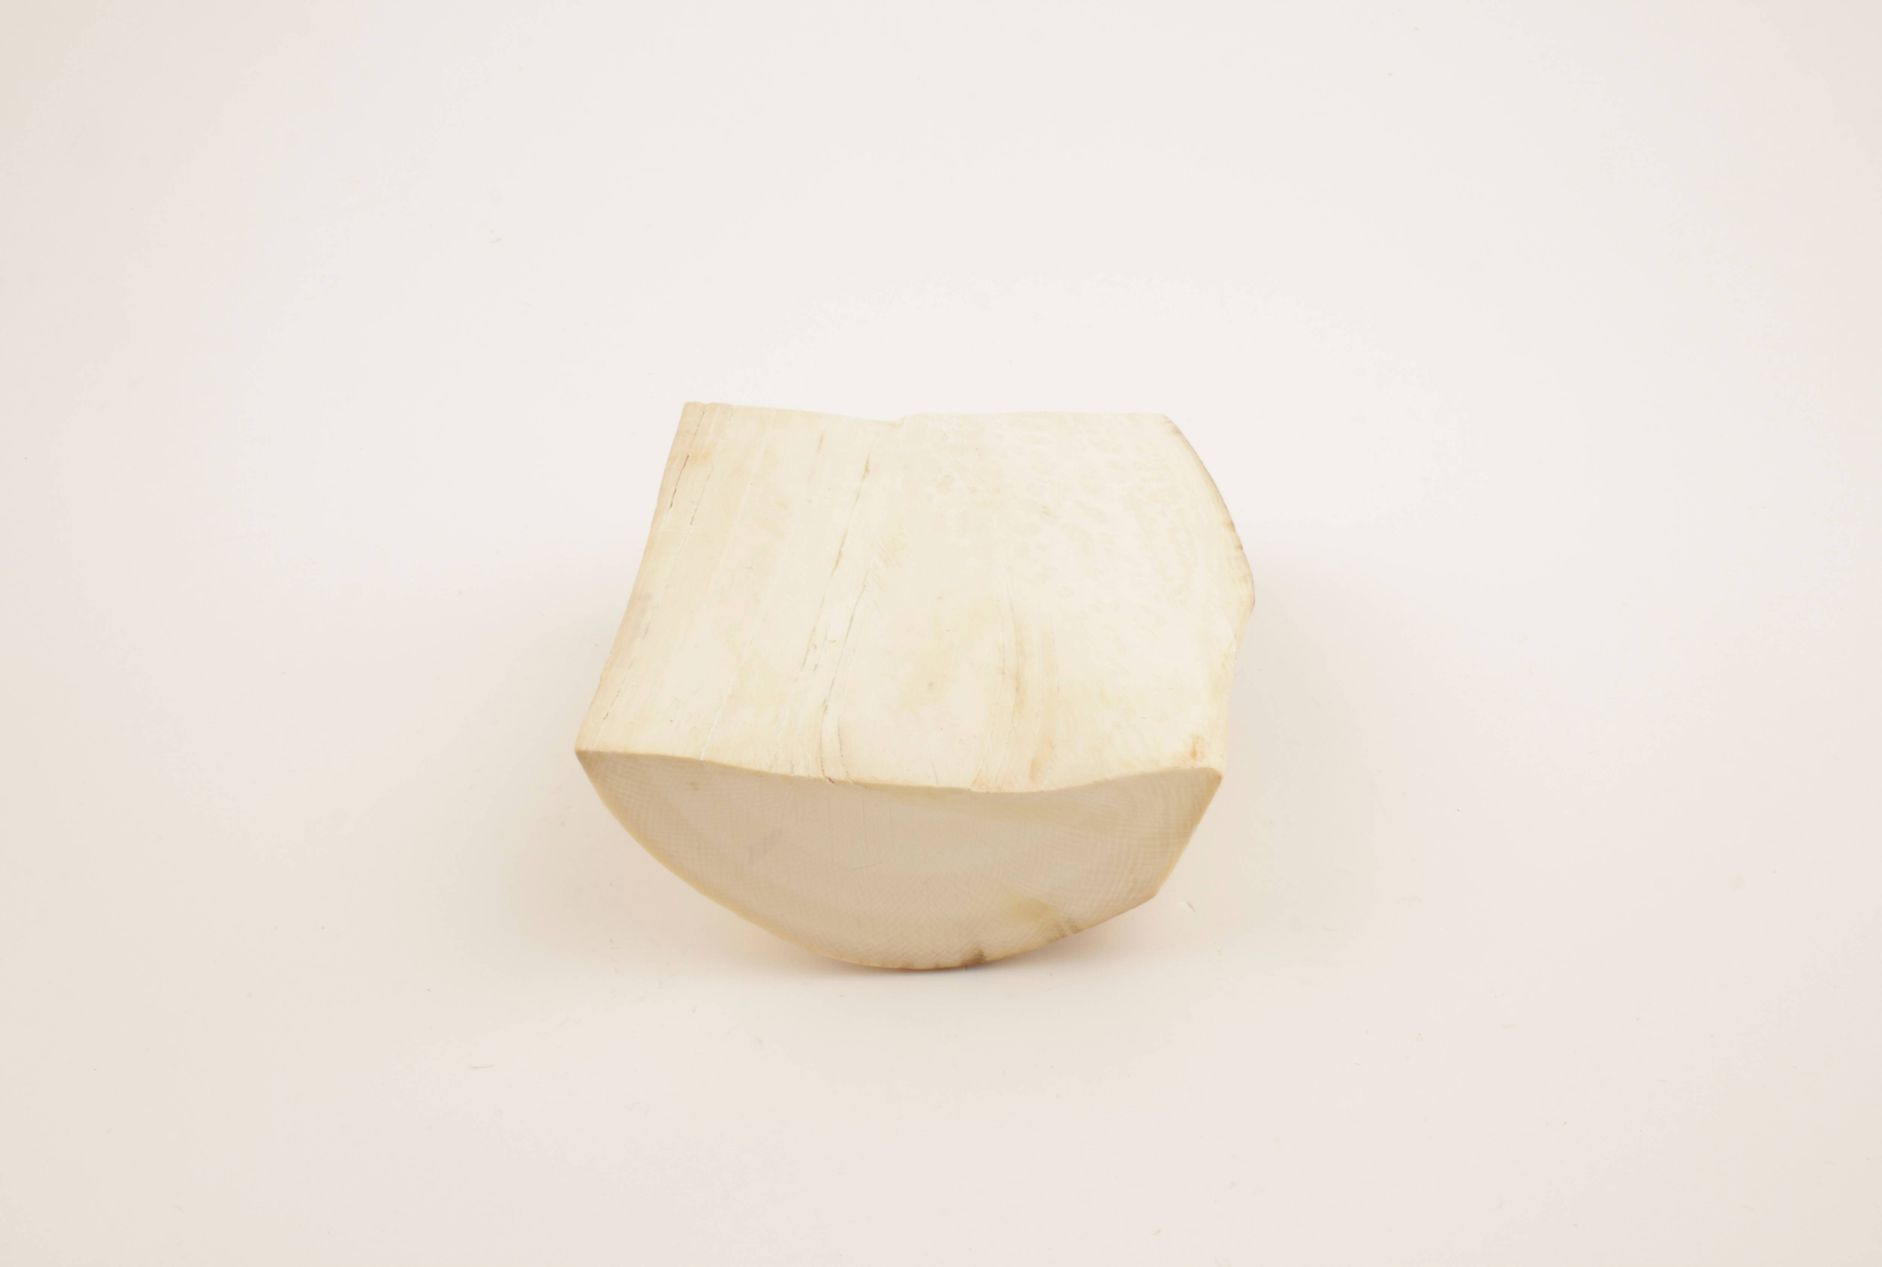 Cream-white mammoth ivory piece